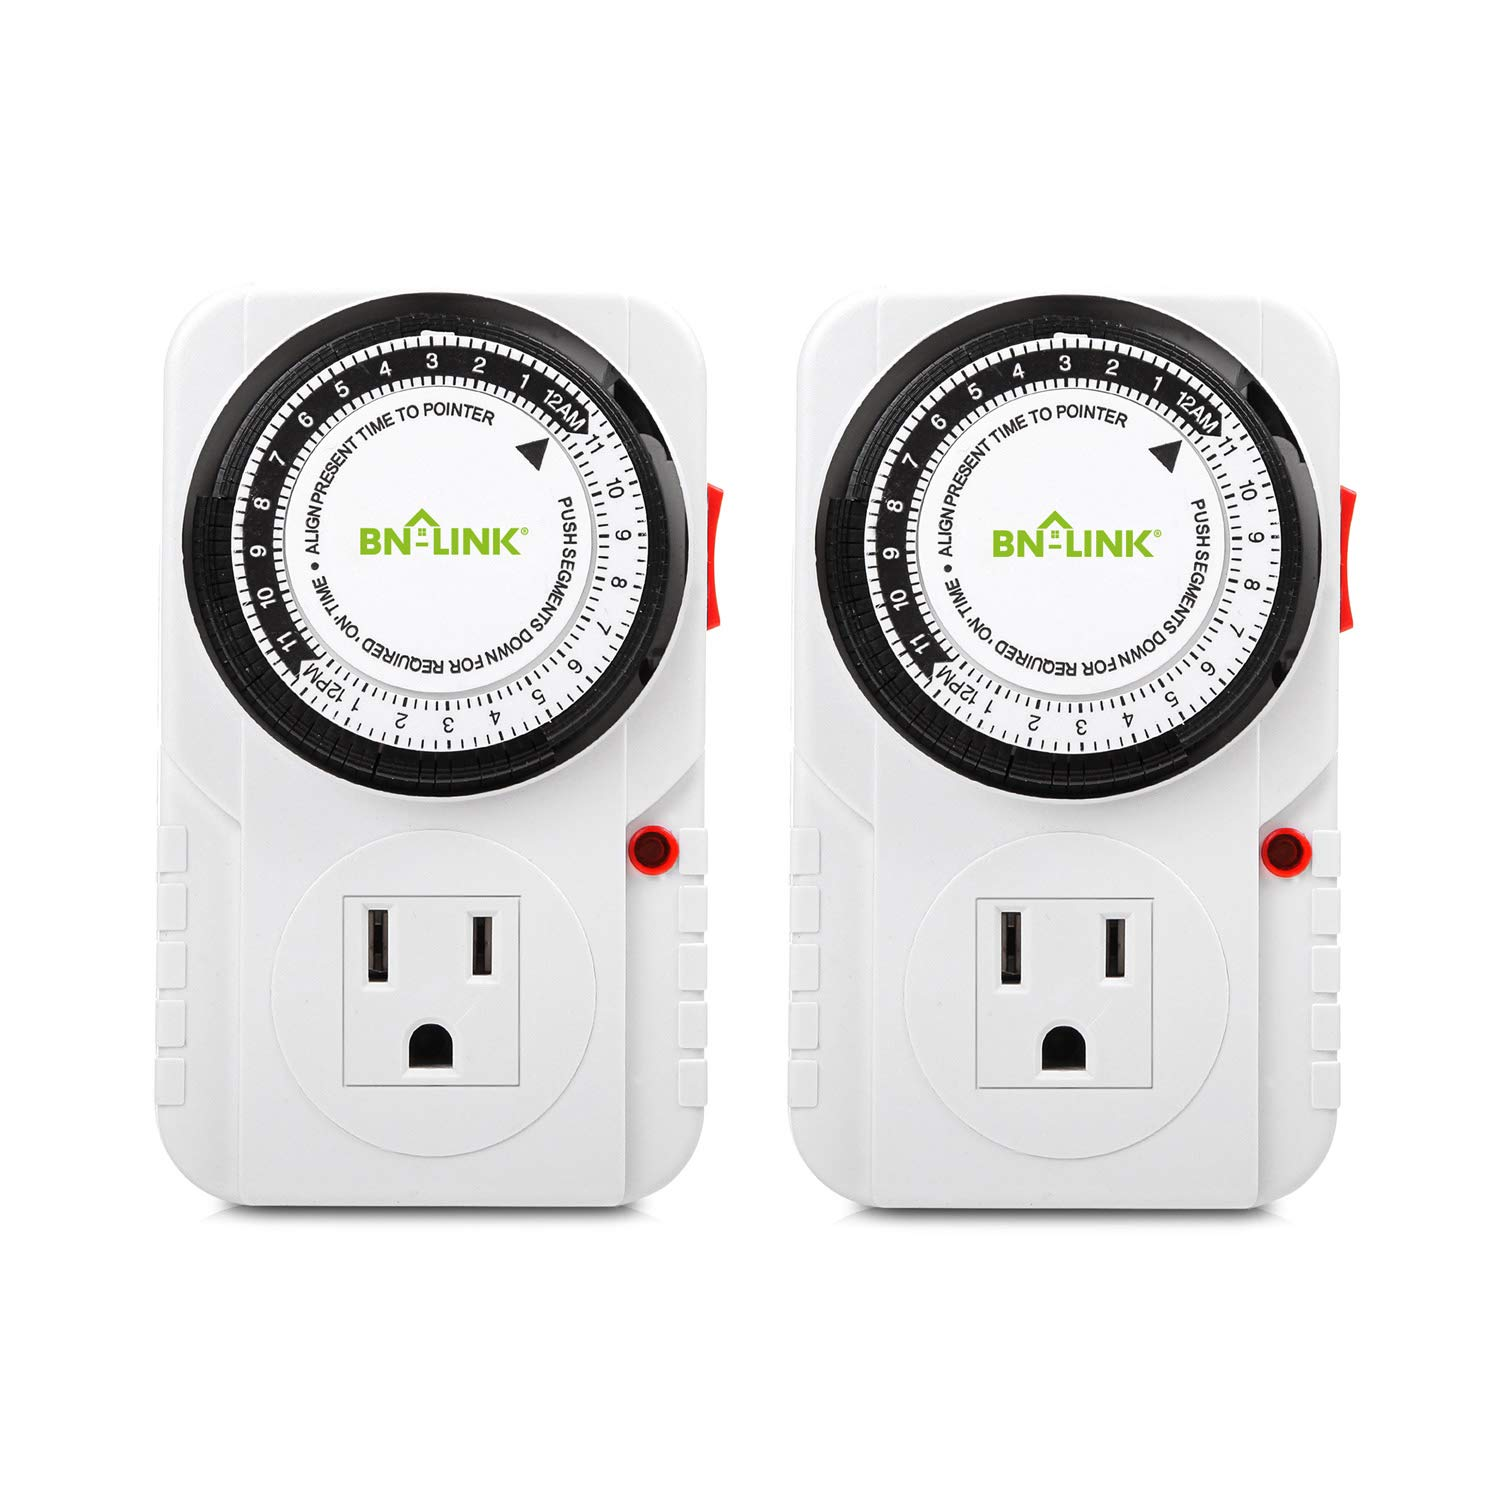 BN-LINK 24 Hour Plug-in Mechanical Timer Grounded, Accurate Heavy Duty, 3-Prong for Lamps Fans Christmas String Lights White AC 1875W 1/2 HP, UL Listed (2 Pack) by BN-LINK